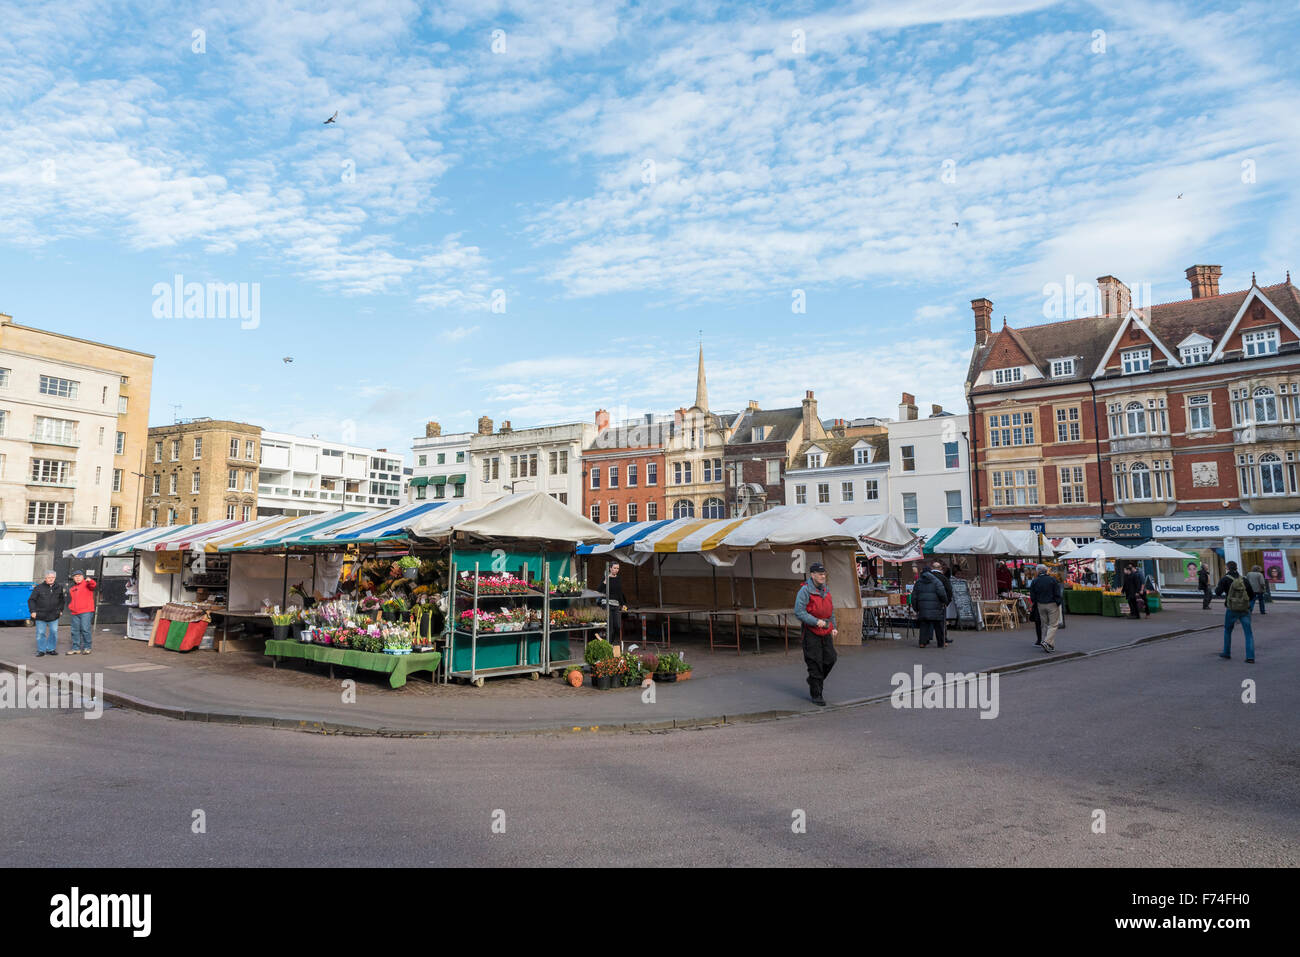 view-of-market-square-and-daily-market-cambridge-city-cambridgeshire-F74FH0.jpg